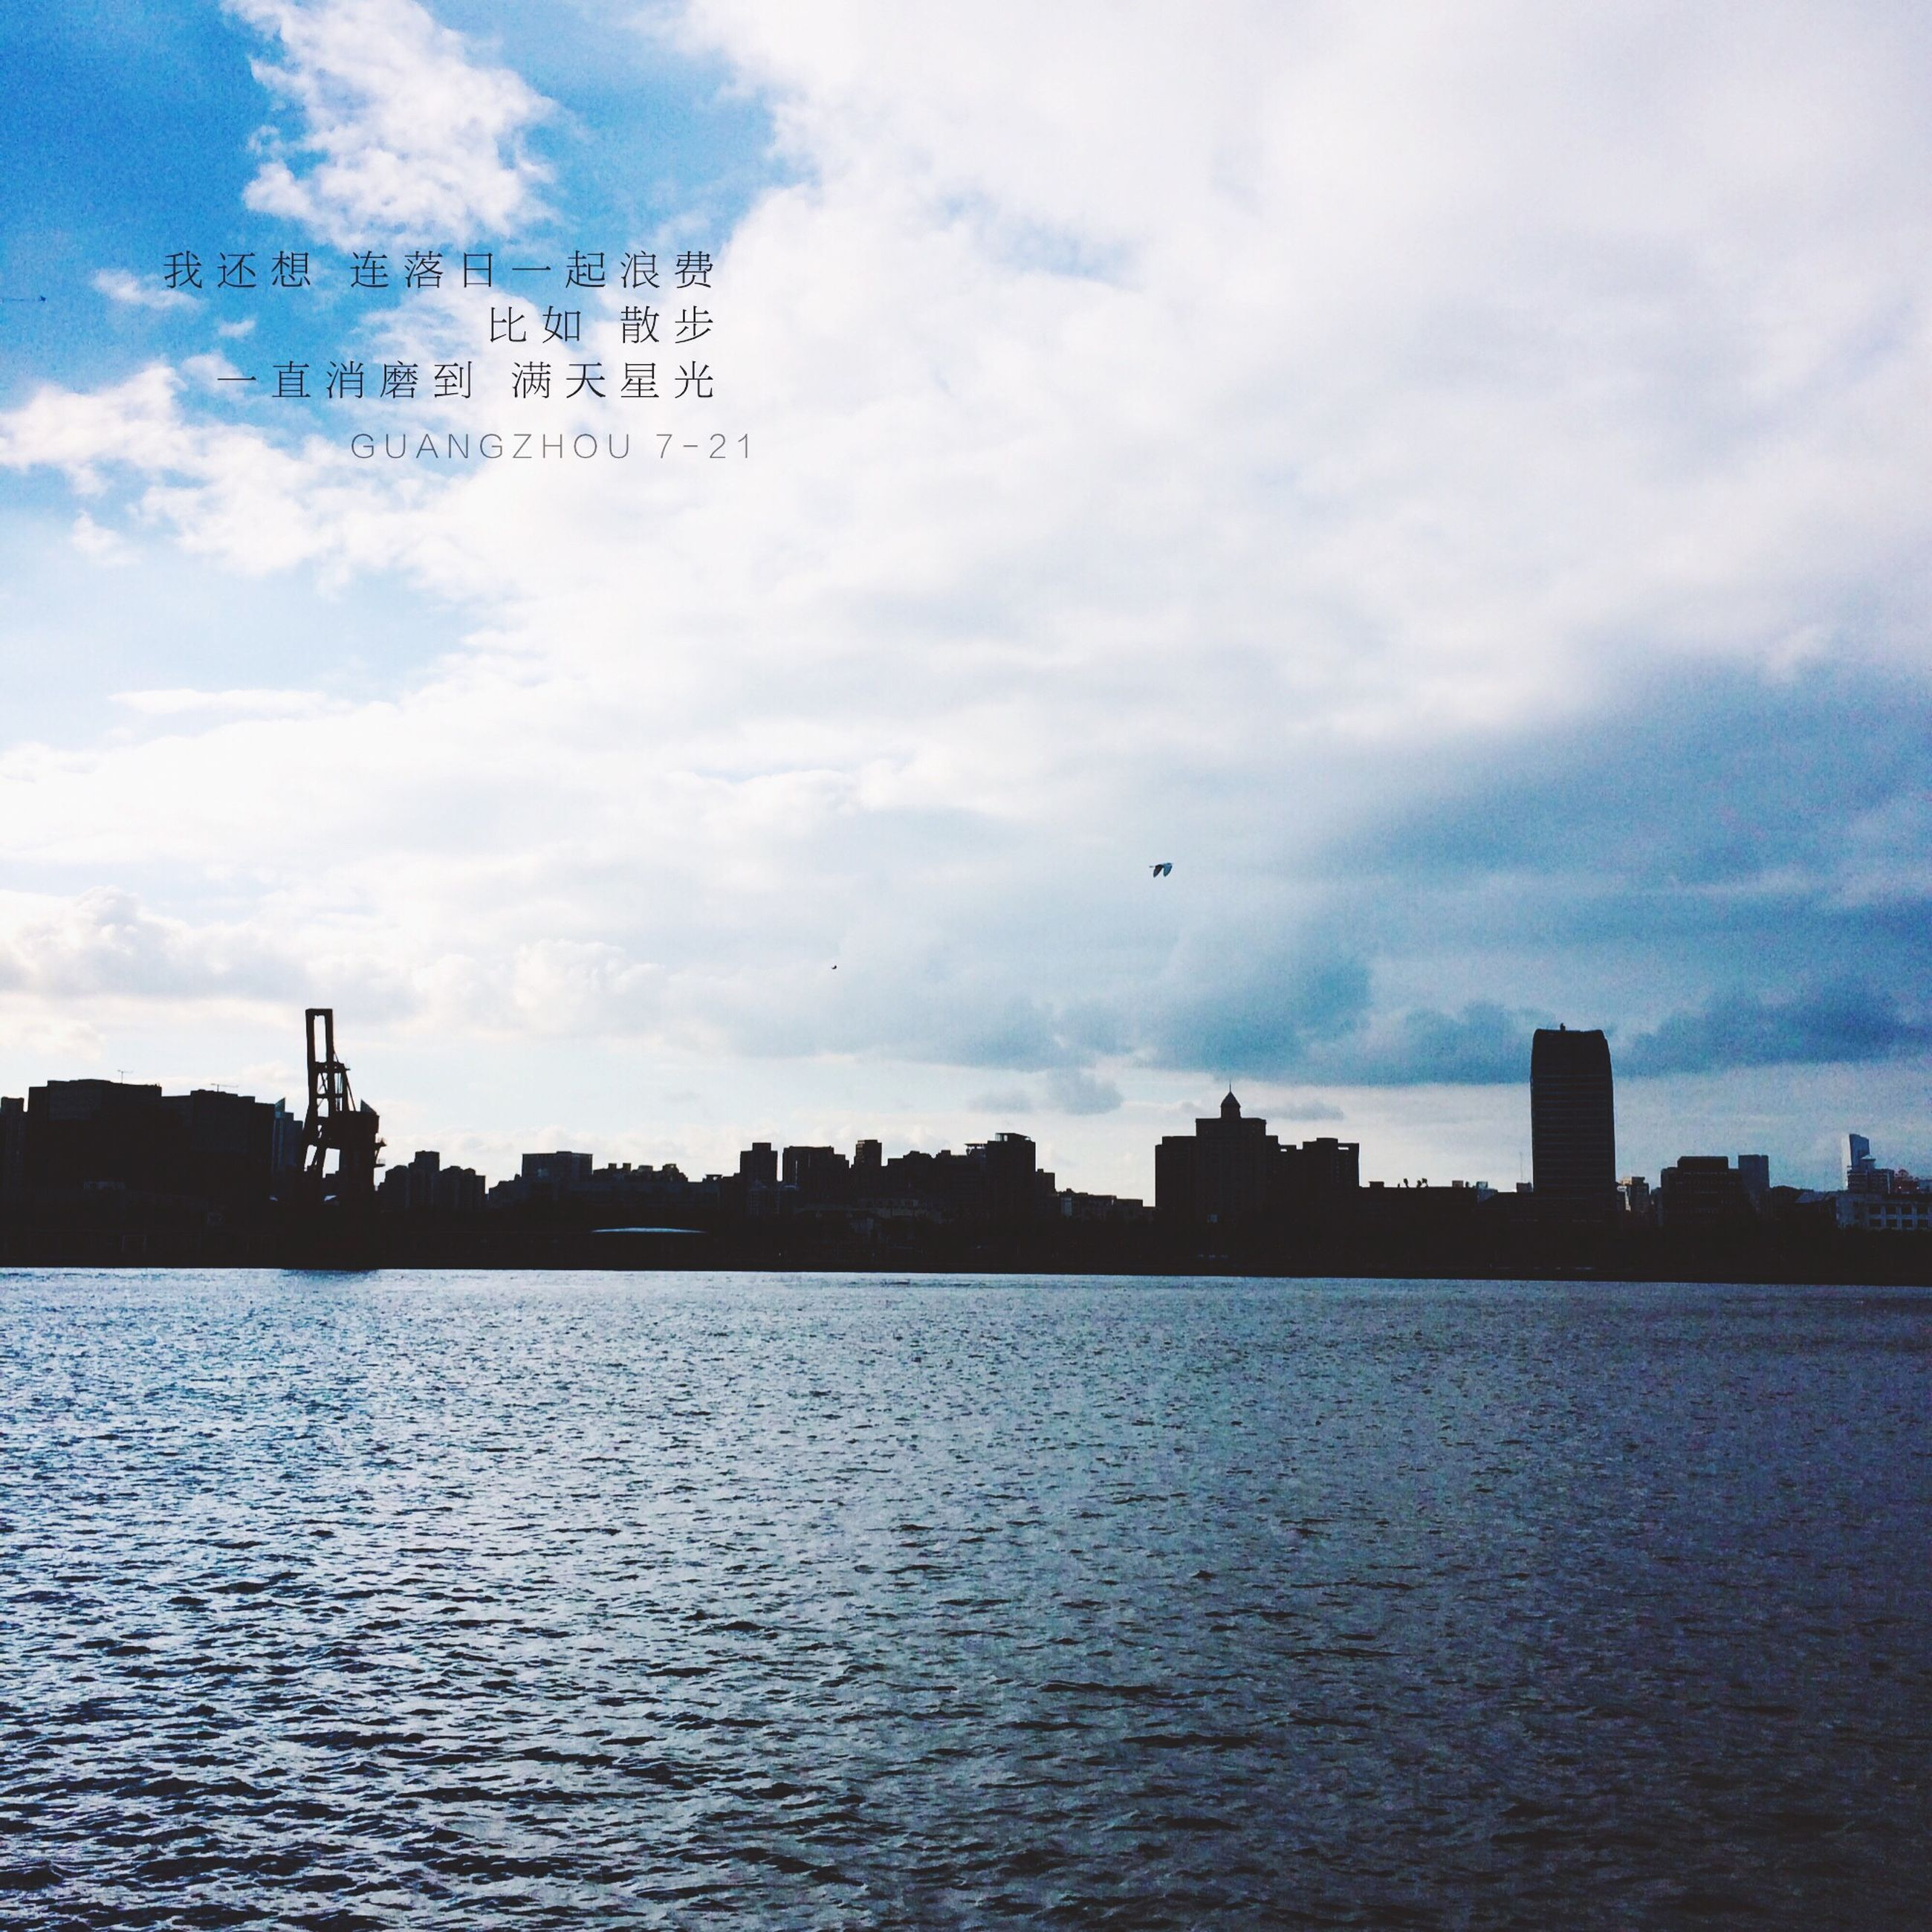 water, waterfront, calm, silhouette, river, building exterior, sky, built structure, architecture, rippled, city, tranquil scene, tranquility, cloud, scenics, outline, blue, cloud - sky, nature, solitude, outdoors, skyline, day, sea, no people, ocean, beauty in nature, flying, cloudy, distant, remote, urban skyline, riverbank